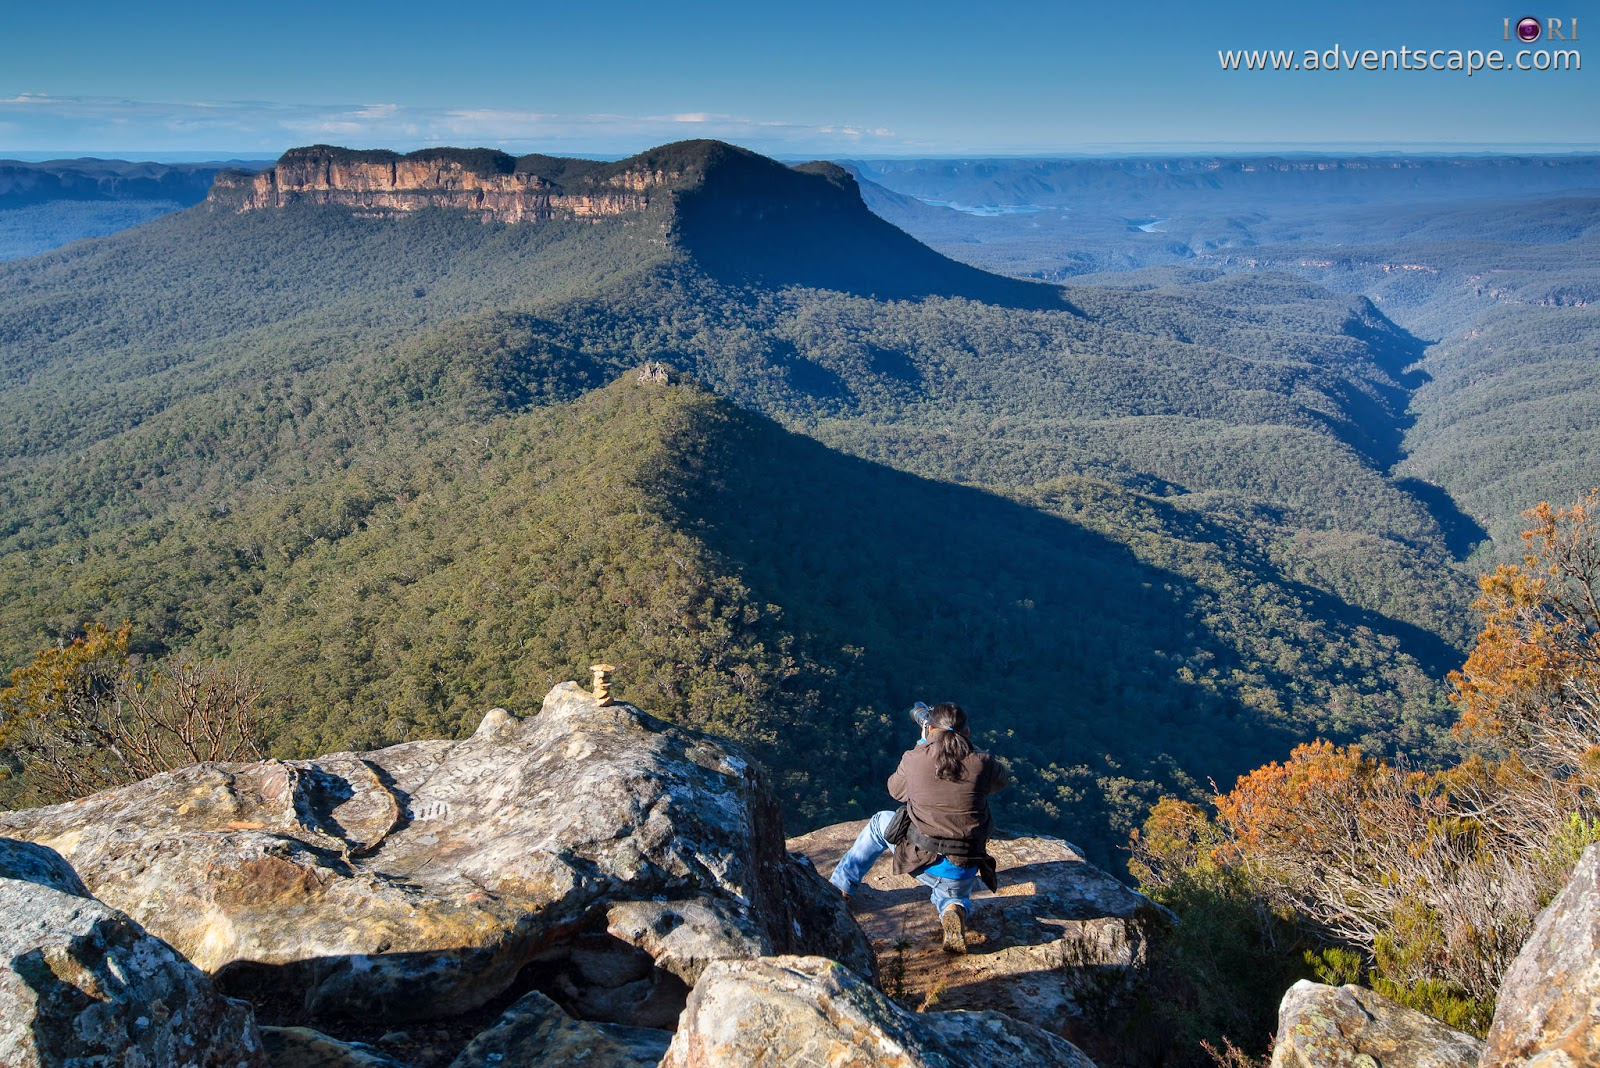 2780, Australia, Australian Landscape Photographer, blogger, Blue Mountain, bushwalk, Castle Head, gate, Glenraphael, Katoomba, lookout, Narrow Neck, New South Wales, NSW, Philip Avellana